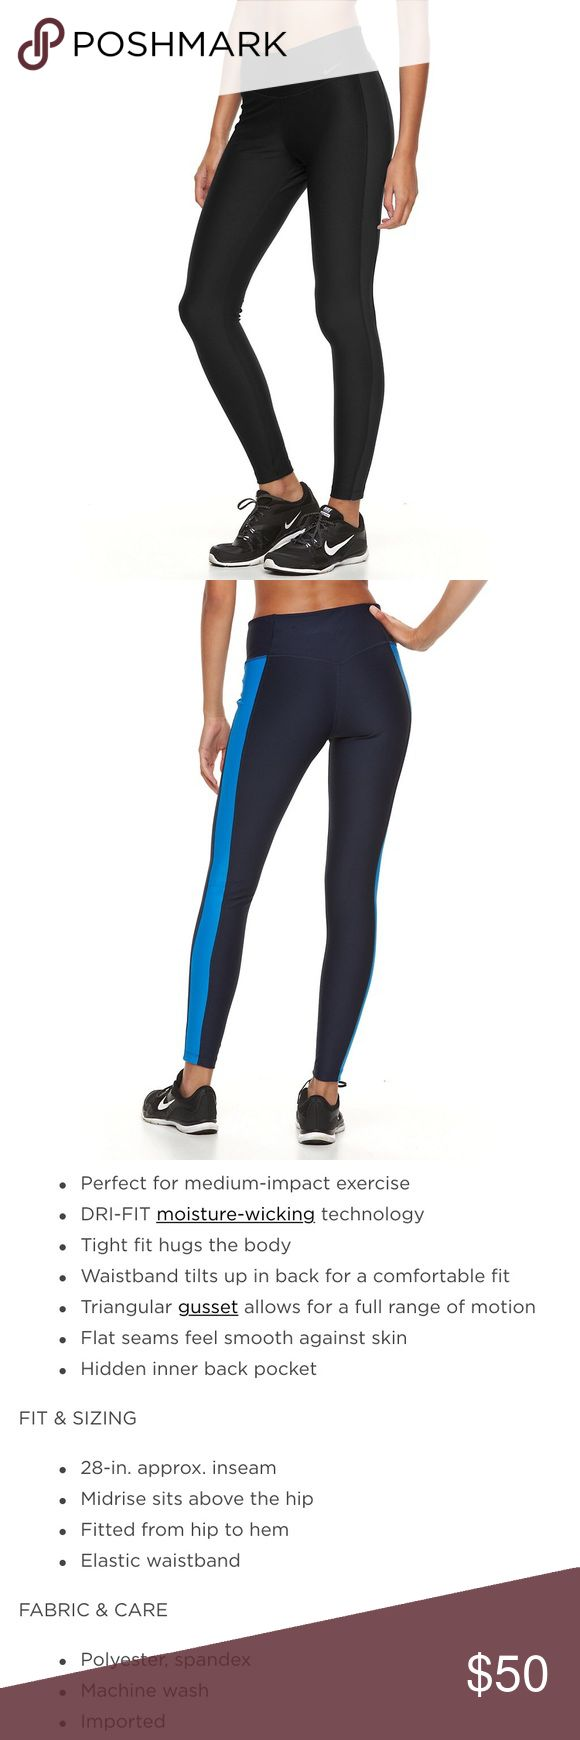 NWT Nike Tight Fit Training Leggings 😍 New with tags! Nike Dri-Fit Tight Fit Women's Athletic Workout Leggings in color black with purple stripe down the side in size Small. 😍😍 Retail value $60 Nike Pants Leggings